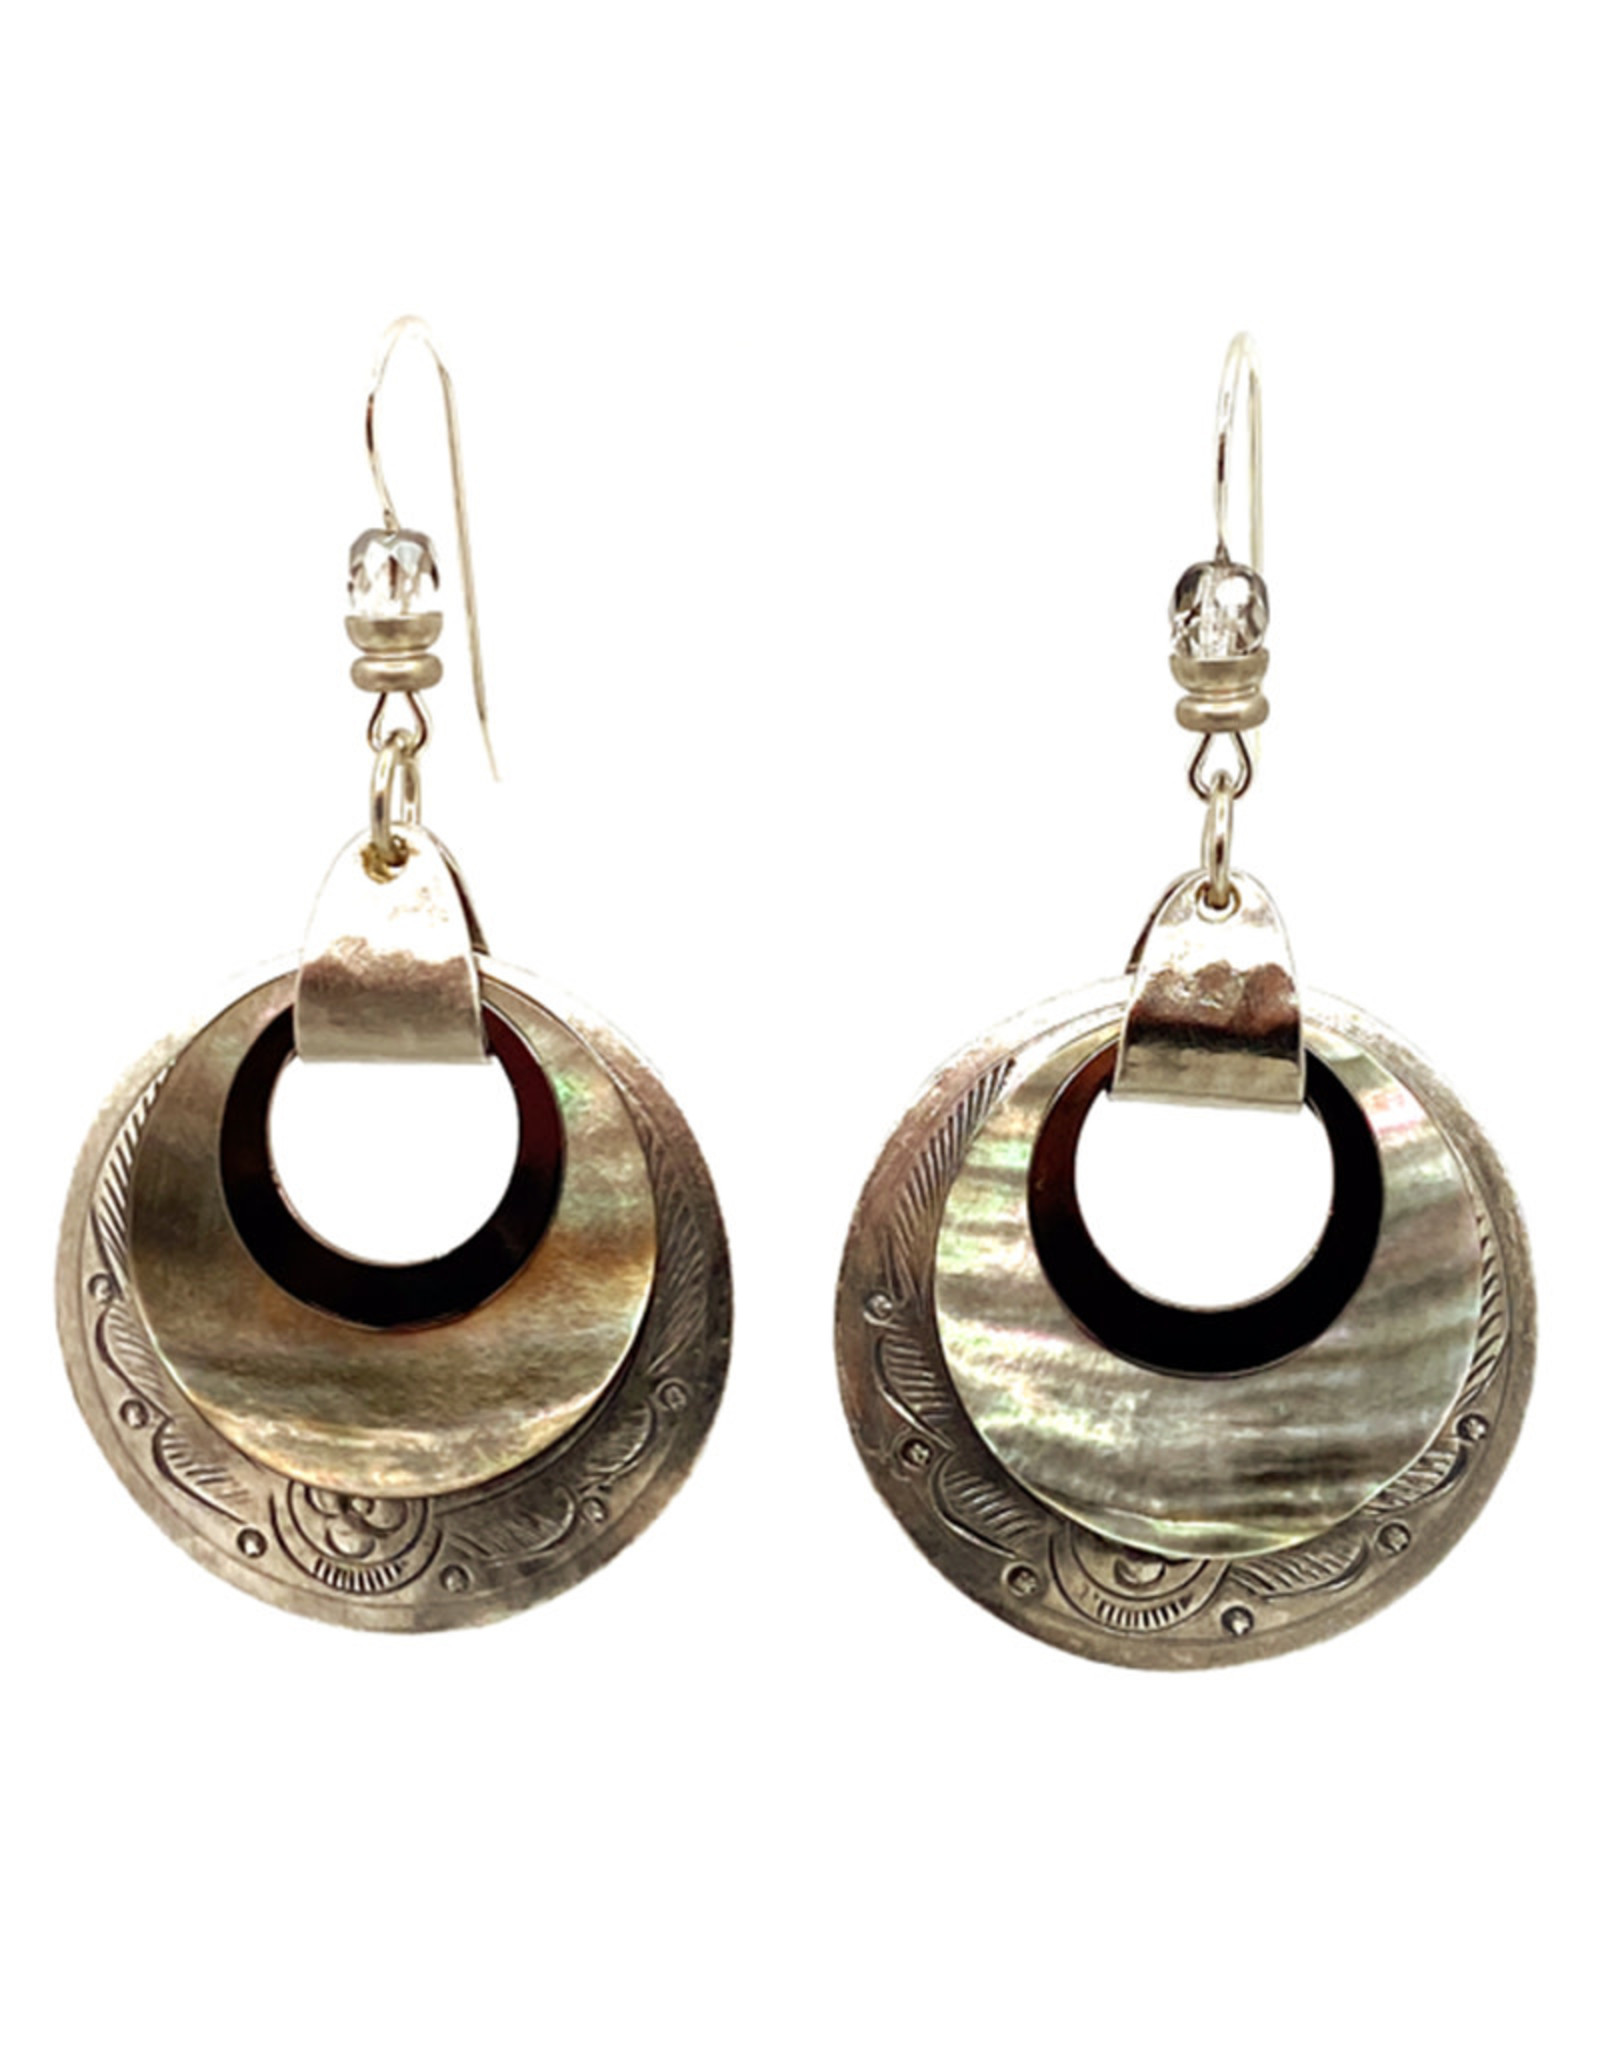 JOHN MICHAEL RICHARDSON MOON PHASES EARRINGS